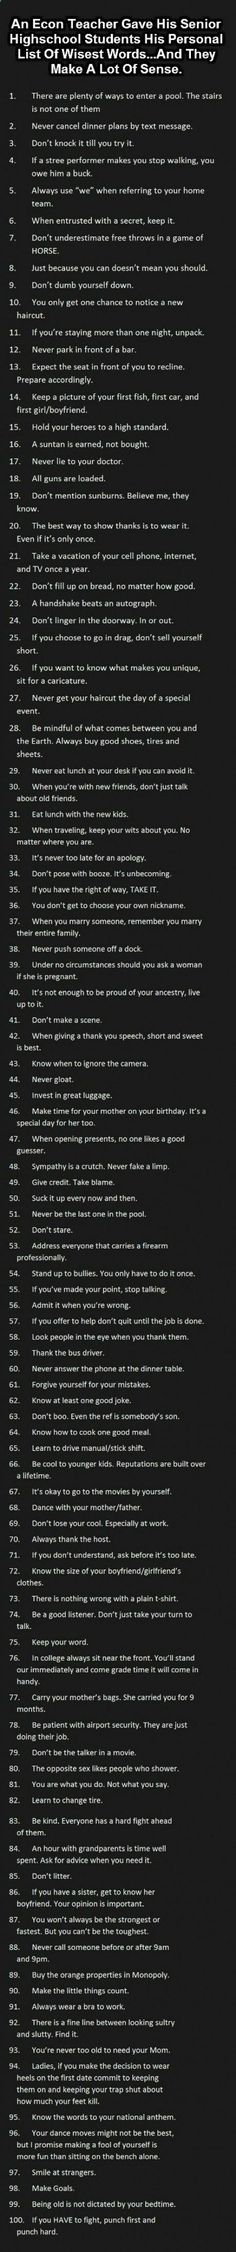 Some wise words to really consider in the journey of life. BC